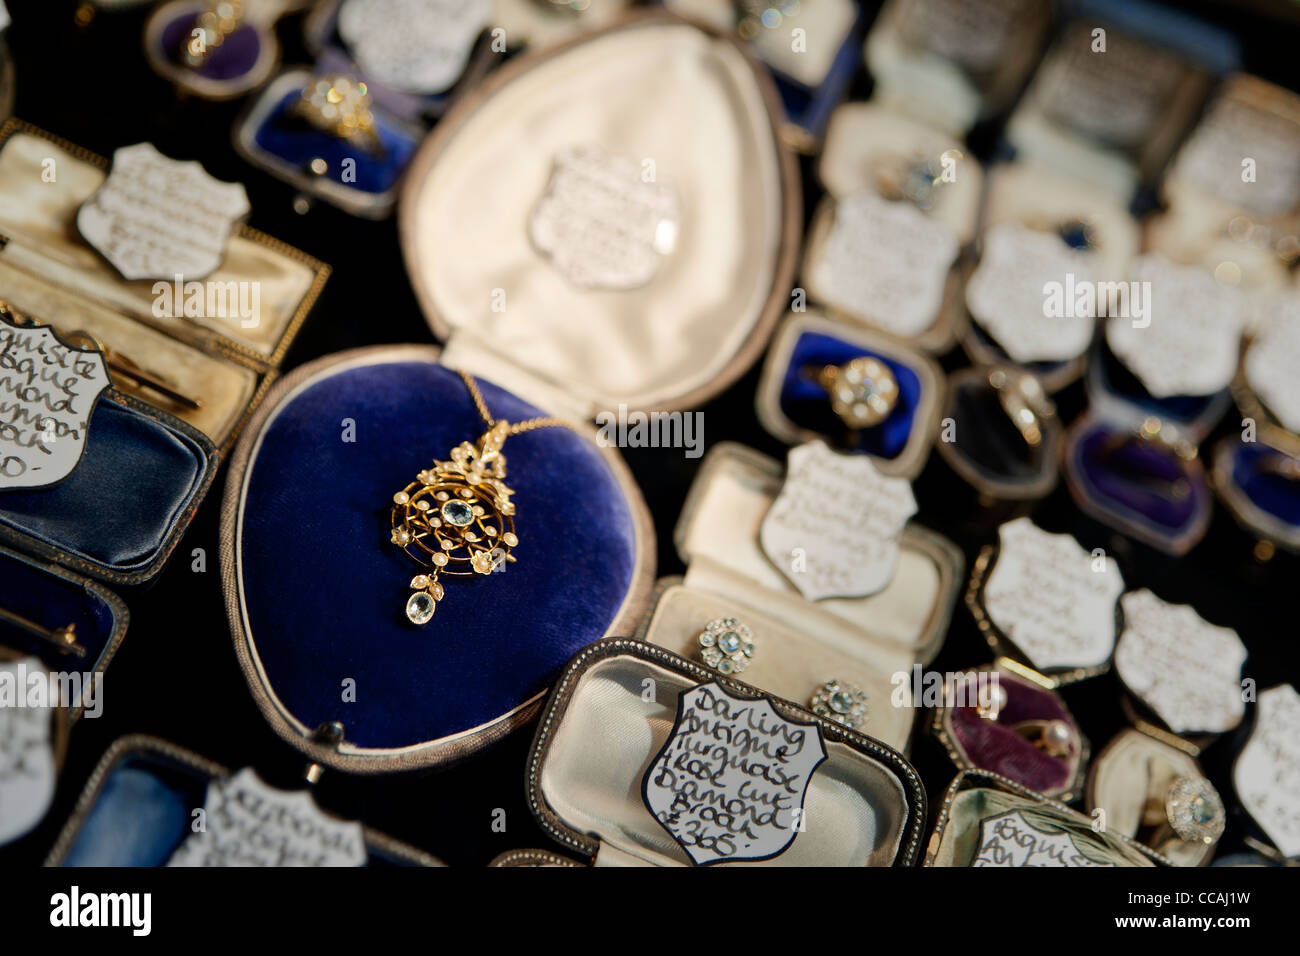 Beautiful secondhand jewellery in a shop window in Brighton Lanes, East Sussex England UK - Stock Image